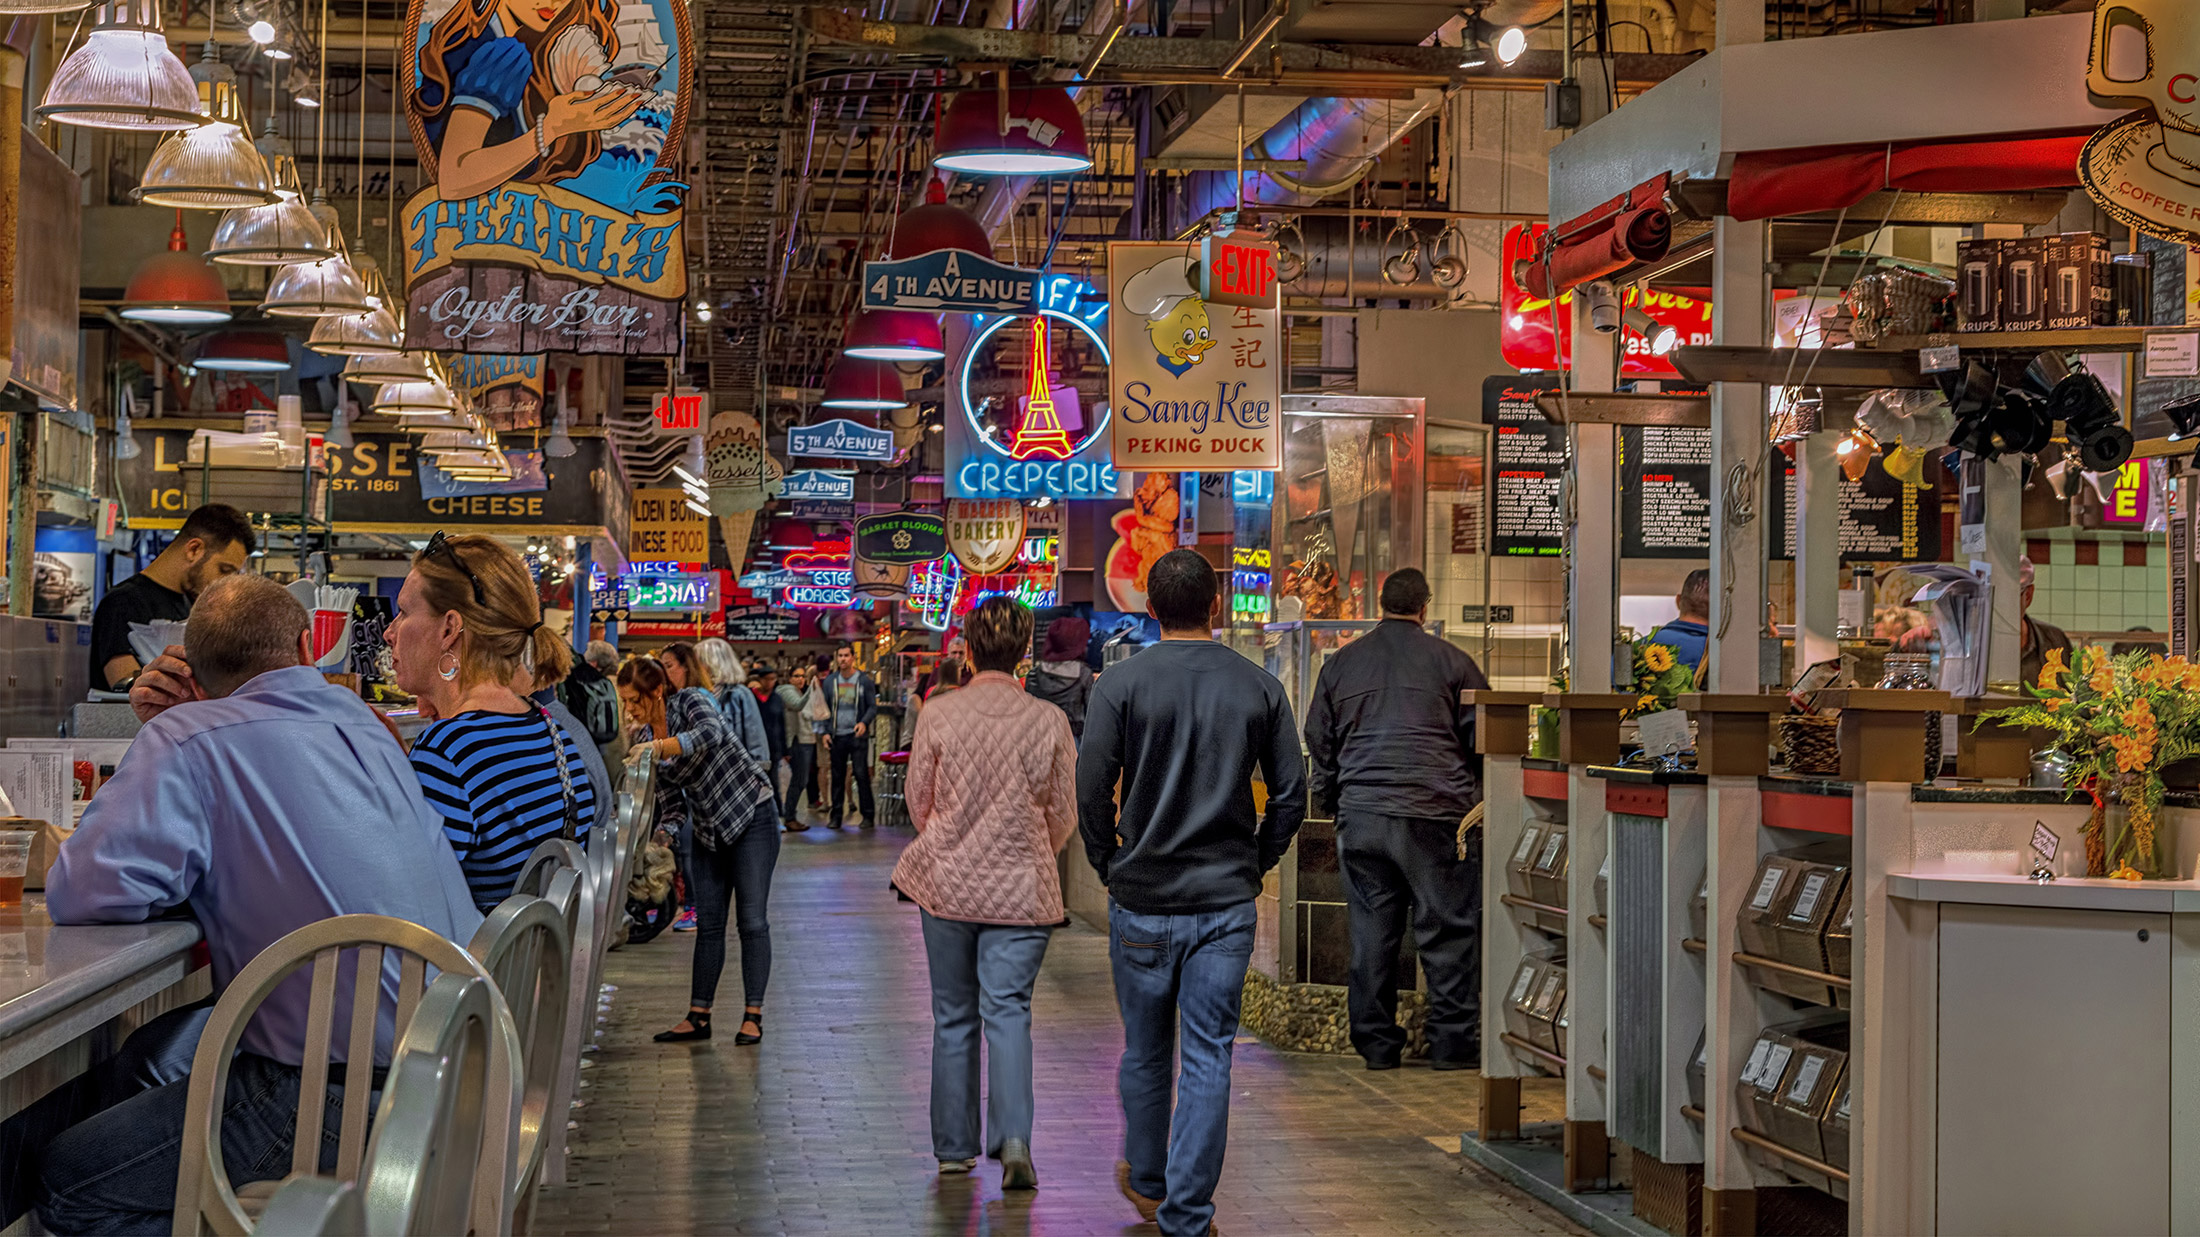 10 Awesome Things To Eat At Reading Terminal Market In Philadelphia